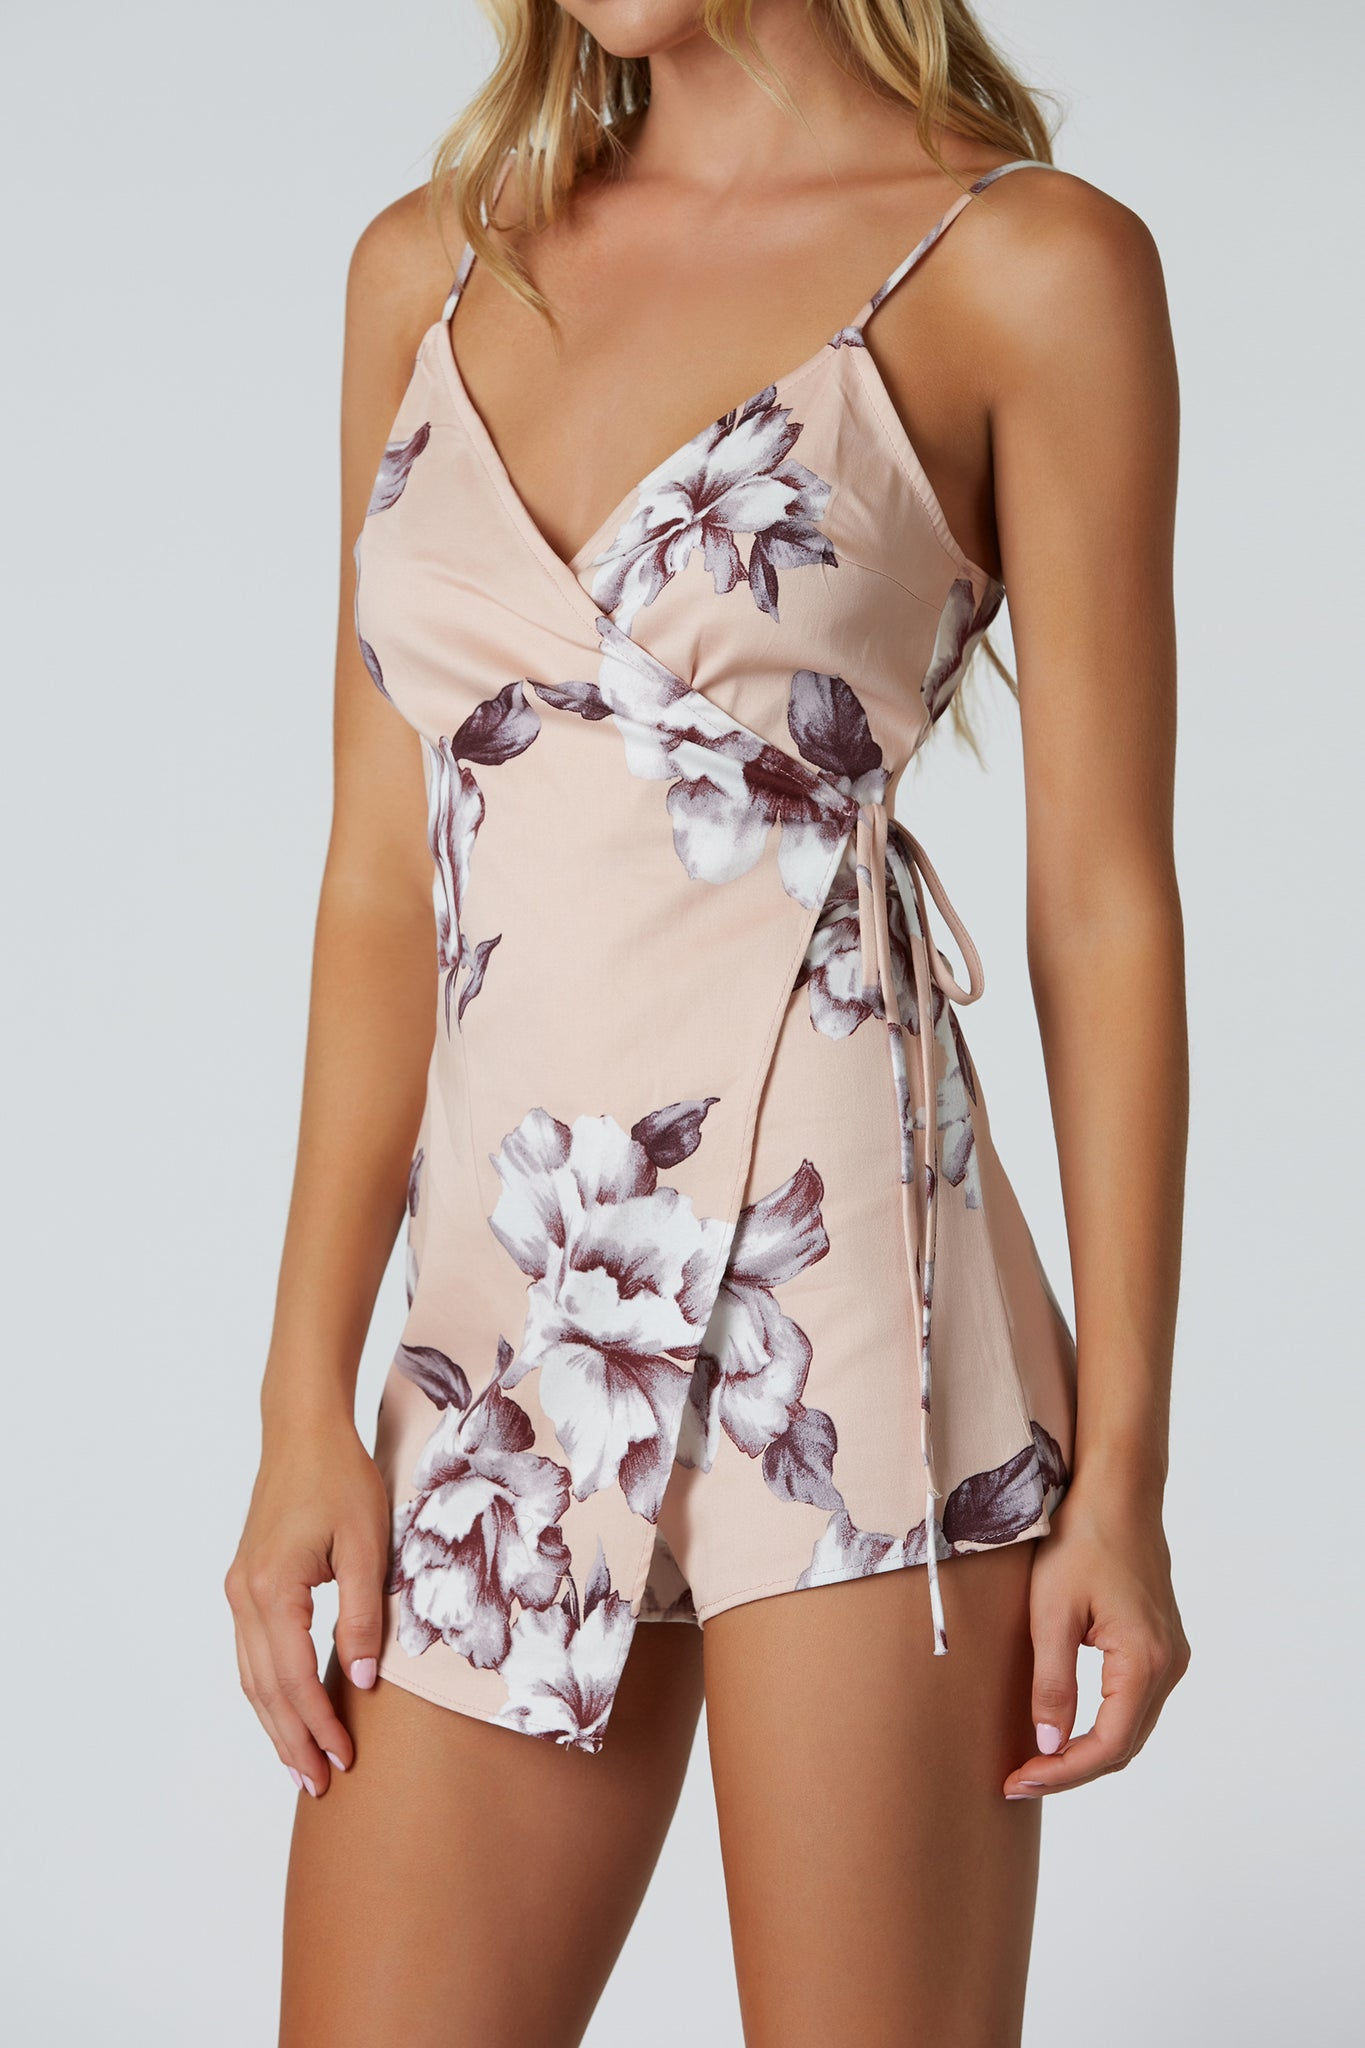 Spaghetti strap printed romper with floral patterns throughout. Stretchy material with back zip closure and chic wrap over front.